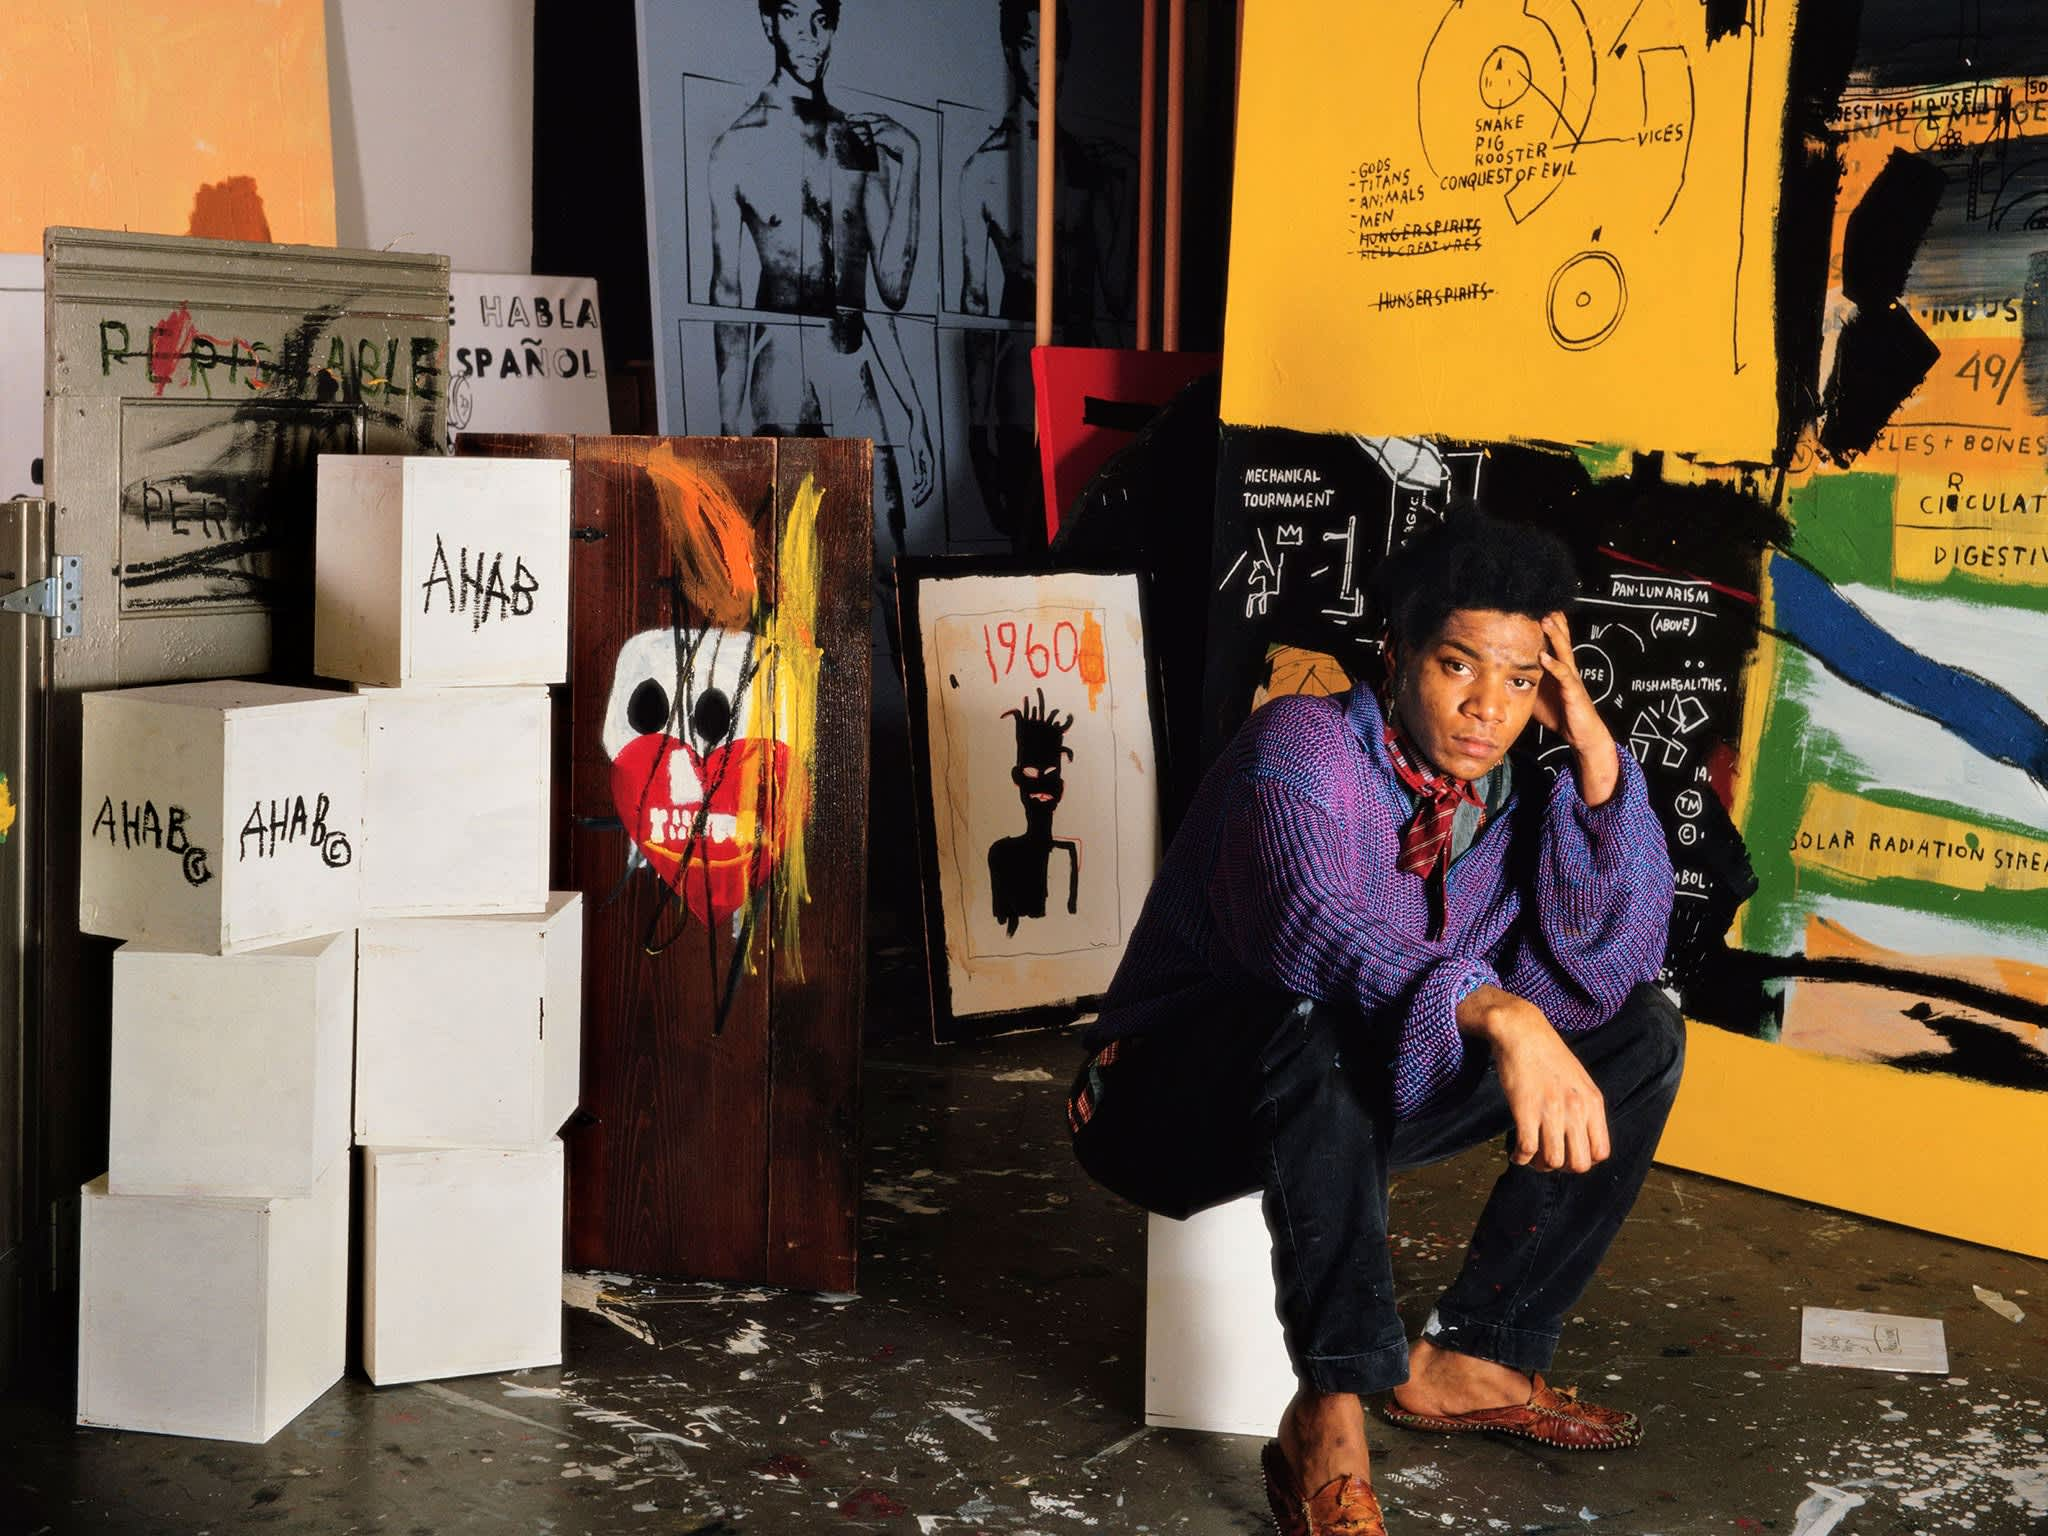 Celebrating the 60th birthday of Jean-Michel Basquiat, On this momentous occasion, we celebrate Basquiat's legacy and outline why his market...